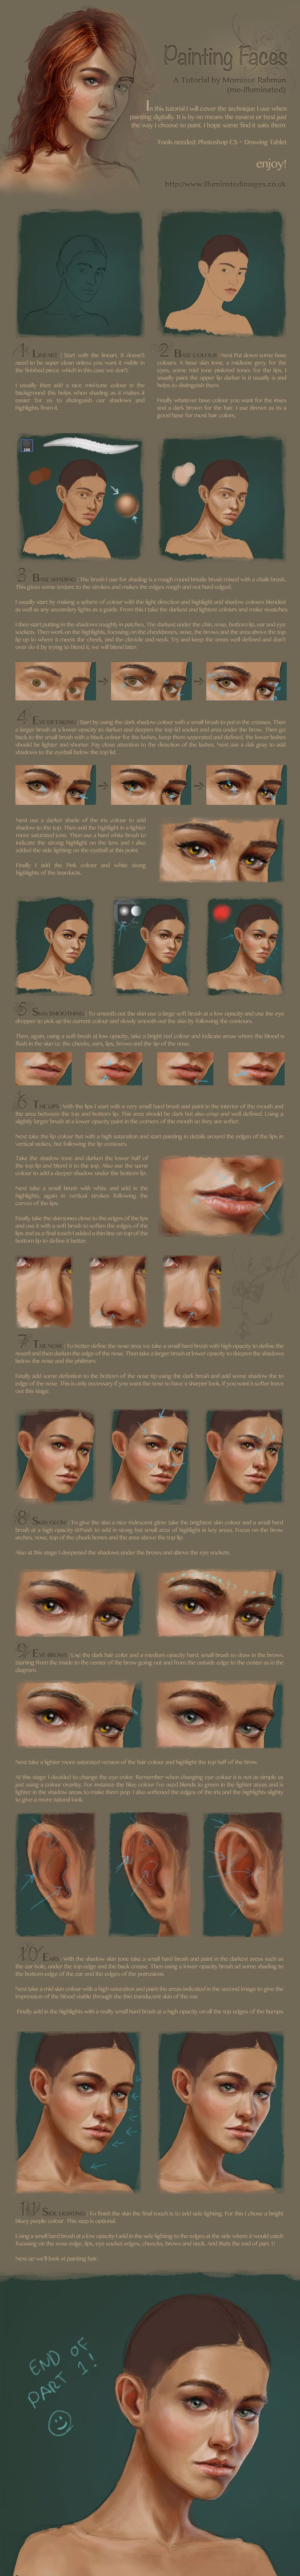 Digital face / portrait painting tutorial part 1 by *me-illuminated on deviantART